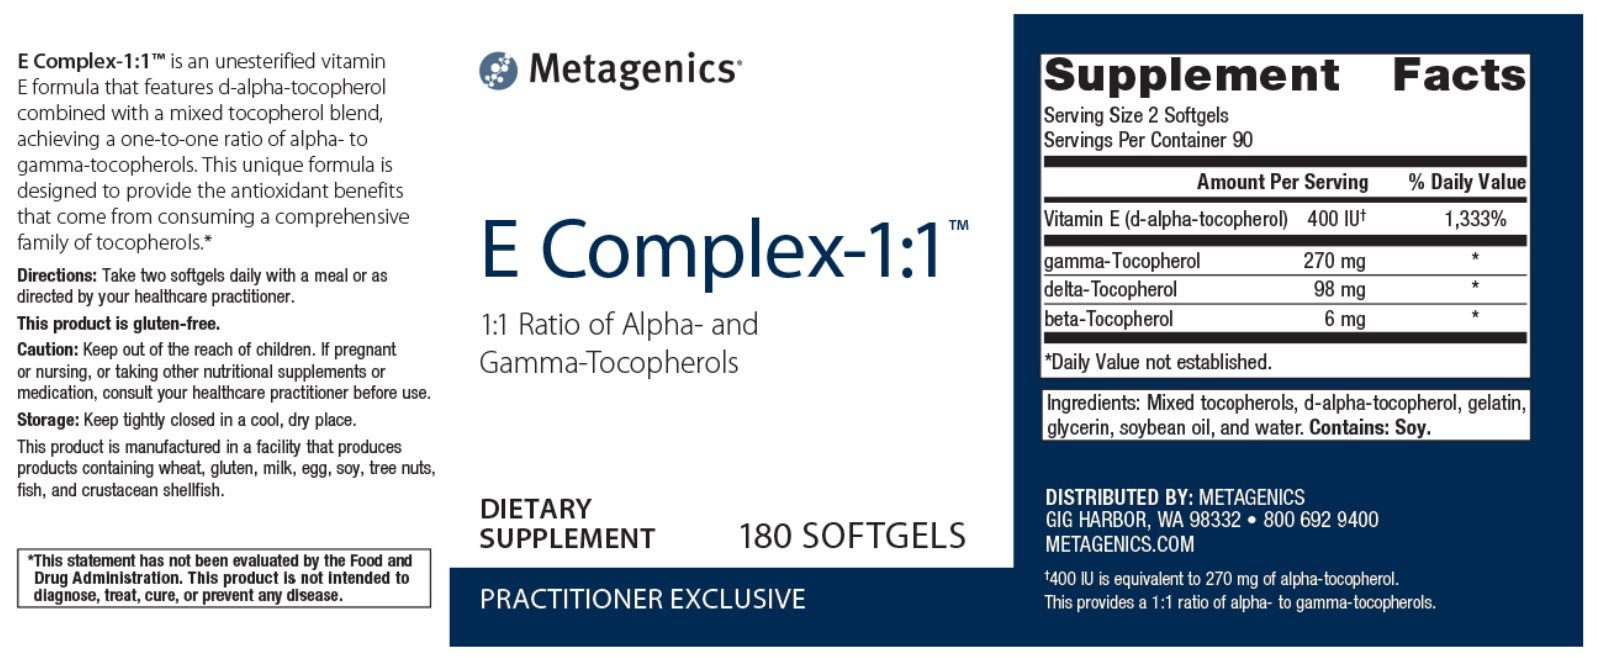 Metagenics E Complex-1:1